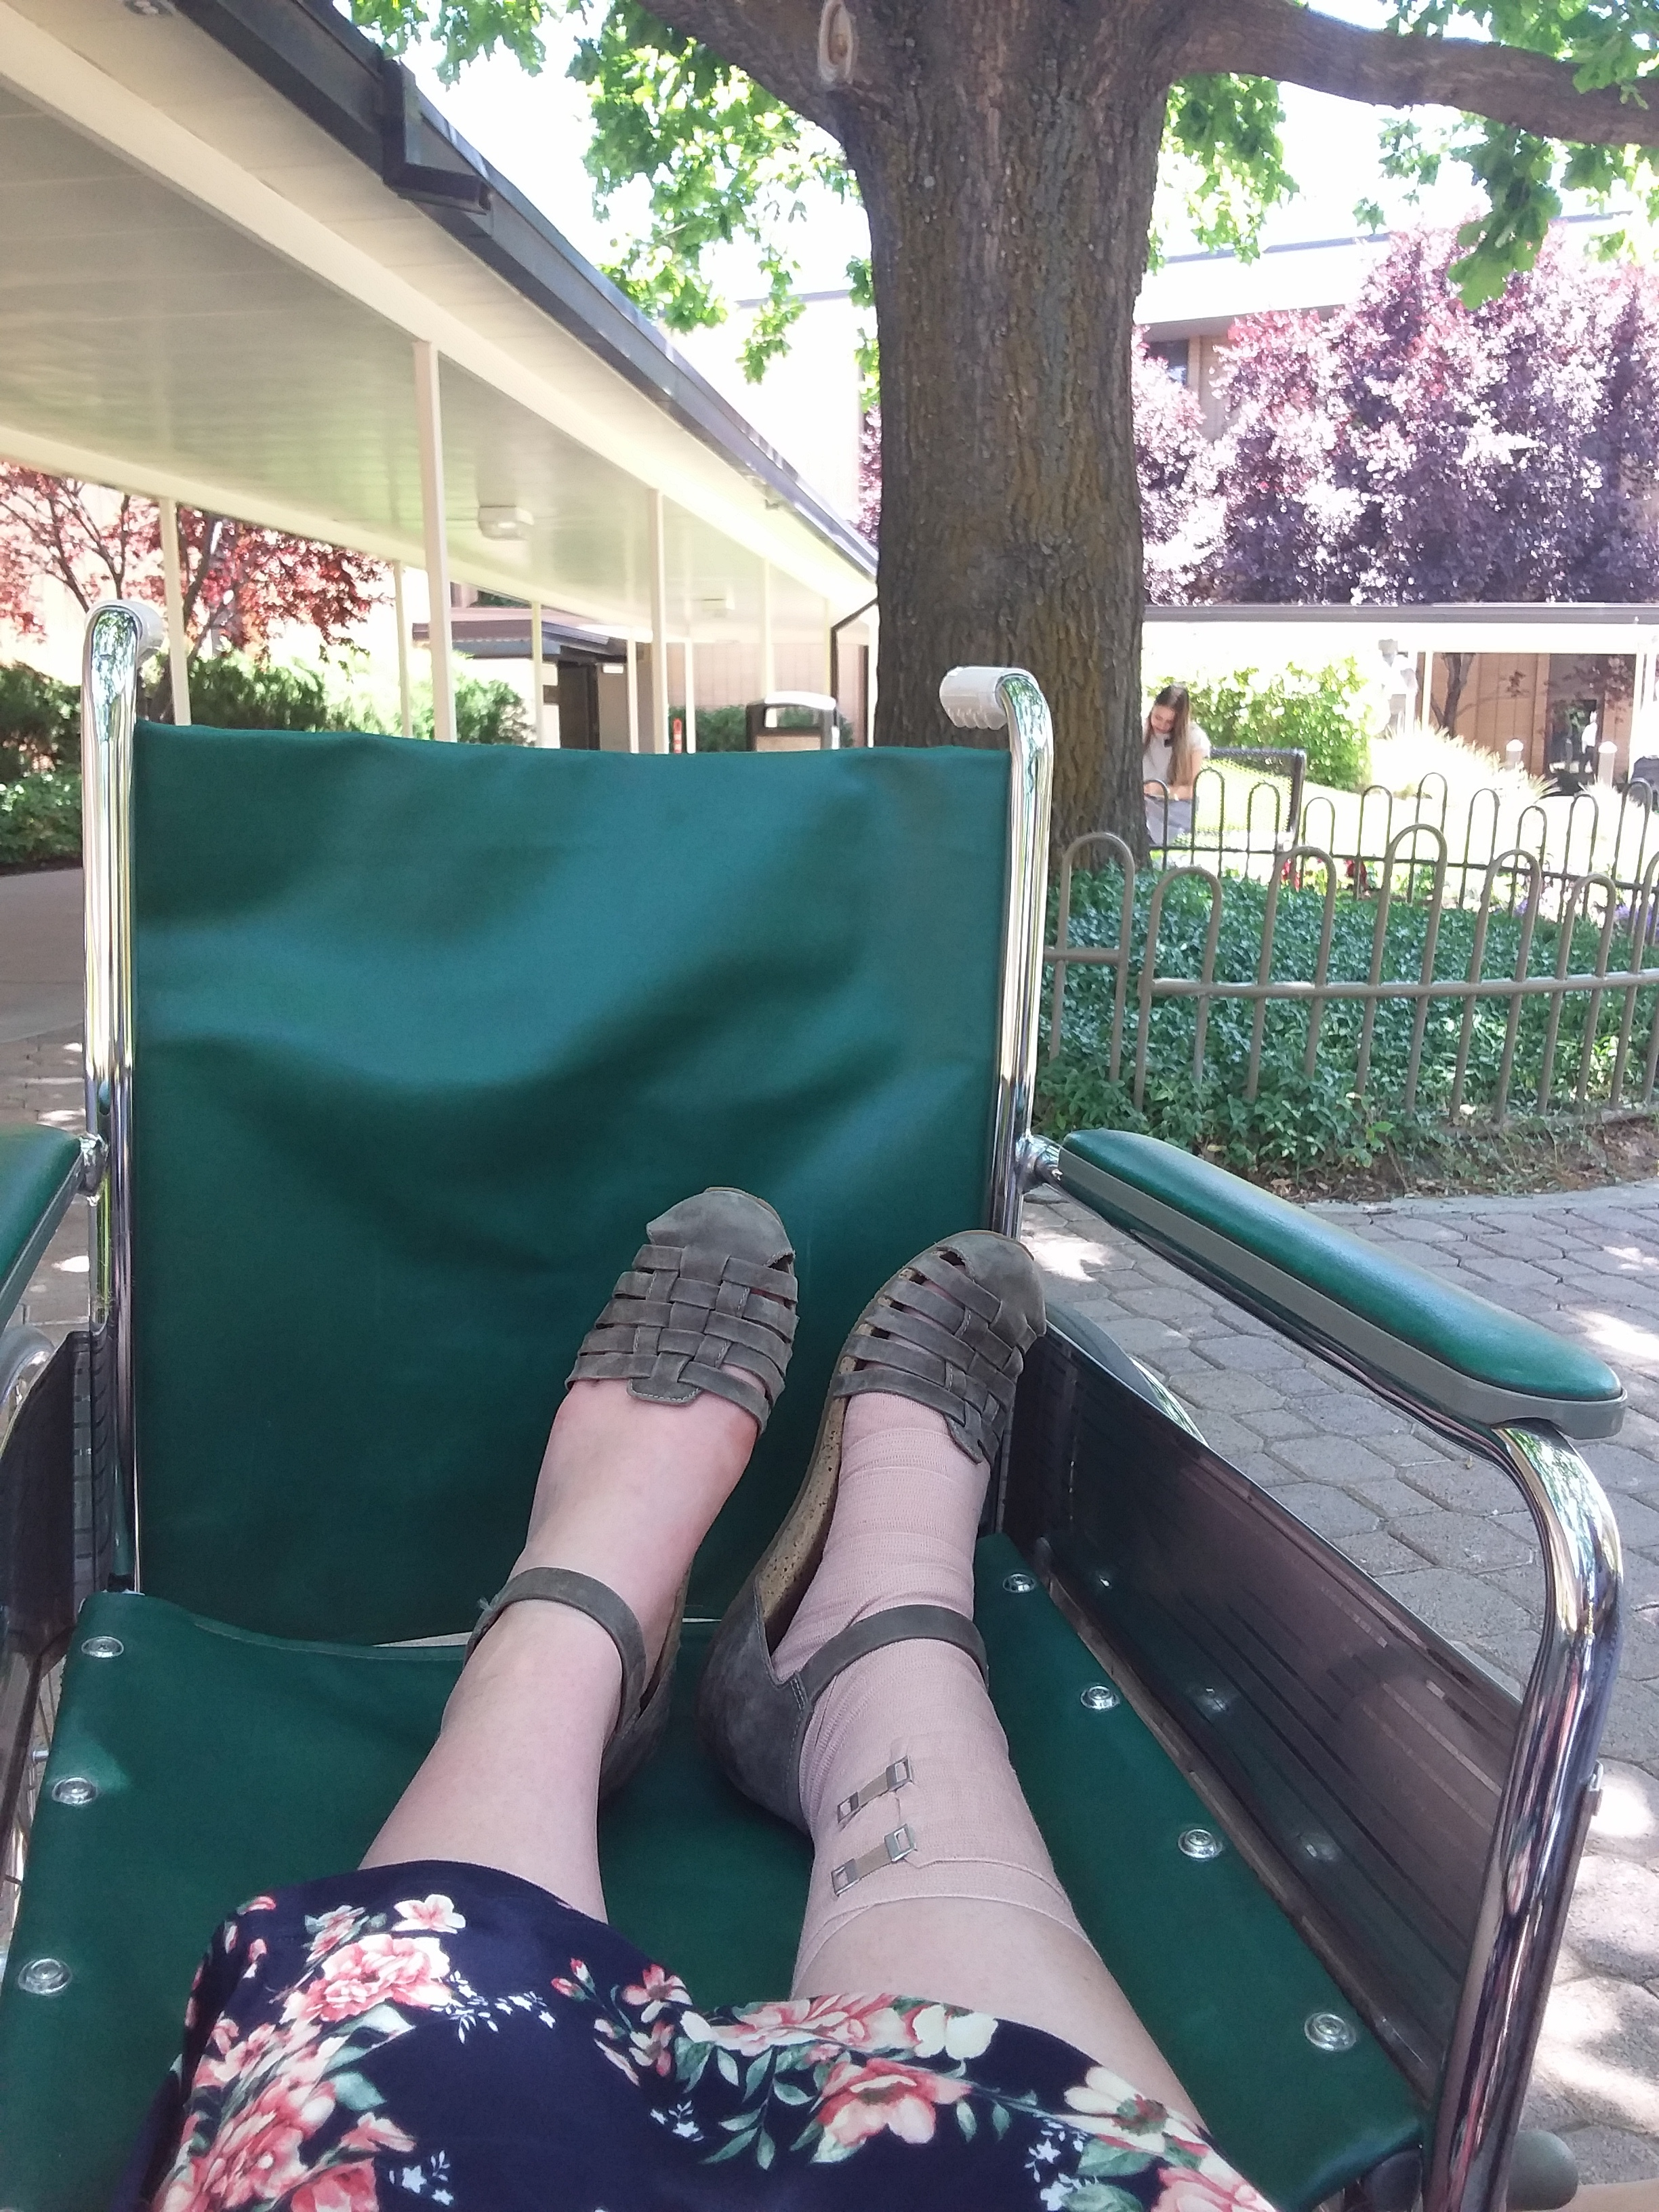 My cute wheelchair and my ankle